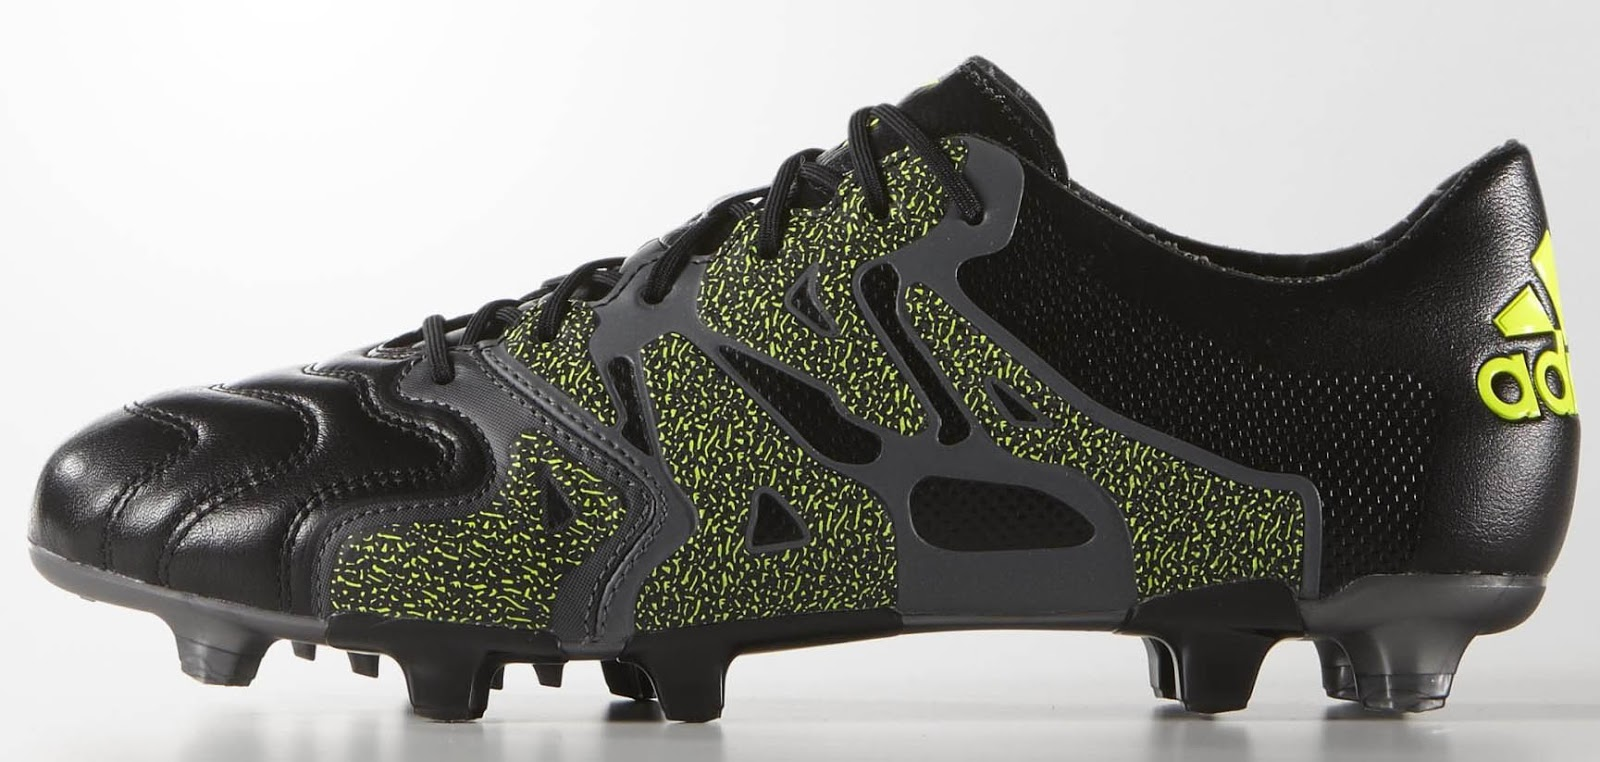 Discount Black Adidas X Leather 2015-2016 Boots Released 970387cee8e99